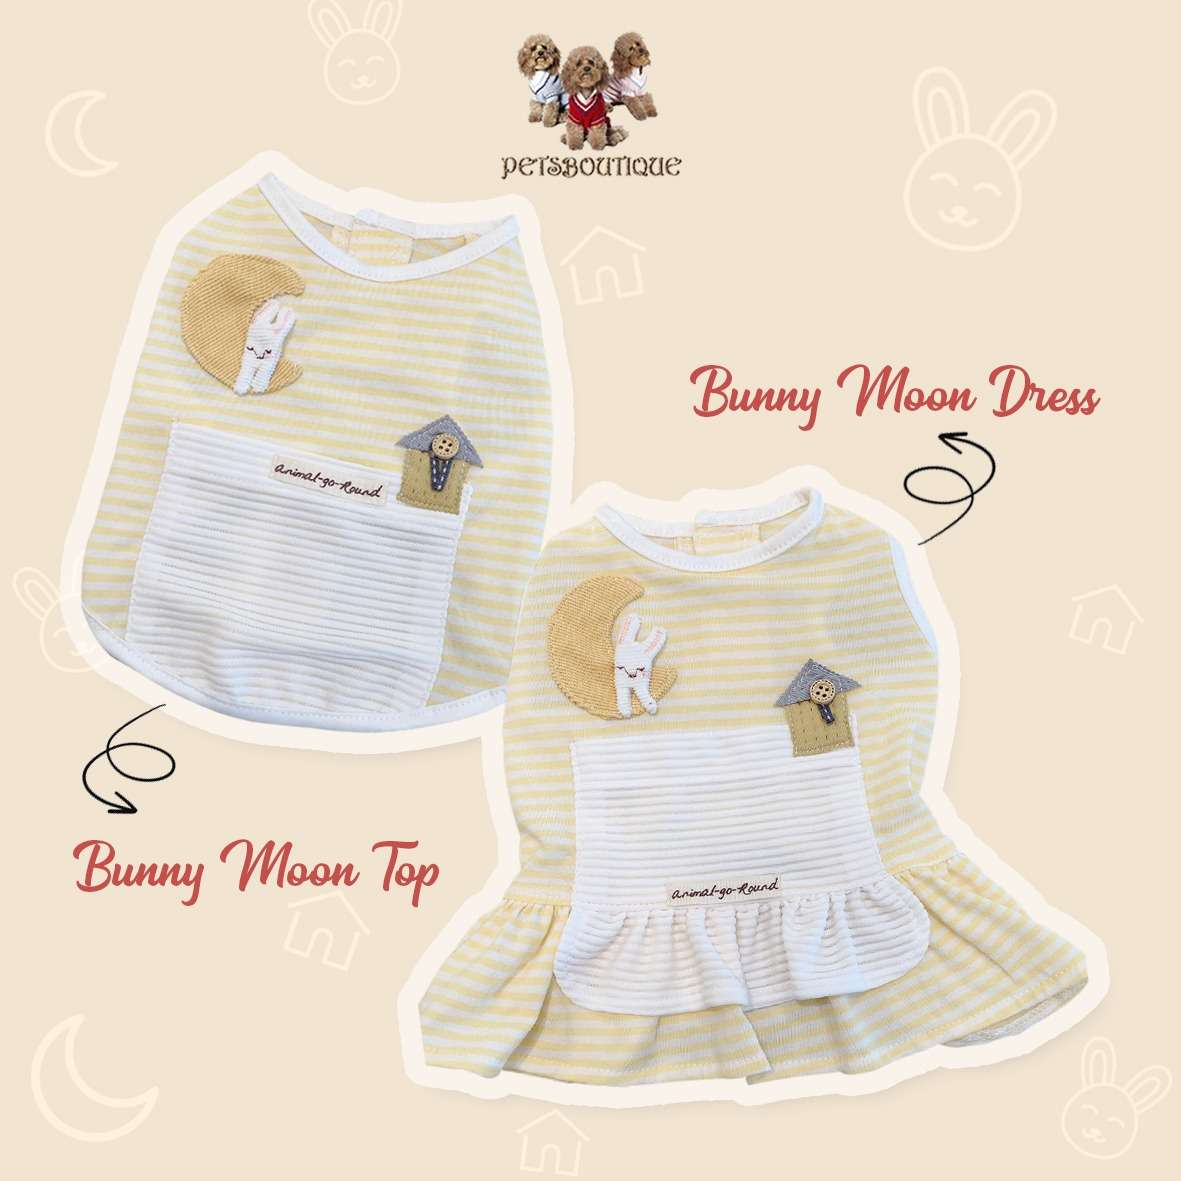 Animal Go Round - Bunny Moon Top & Dress Photo